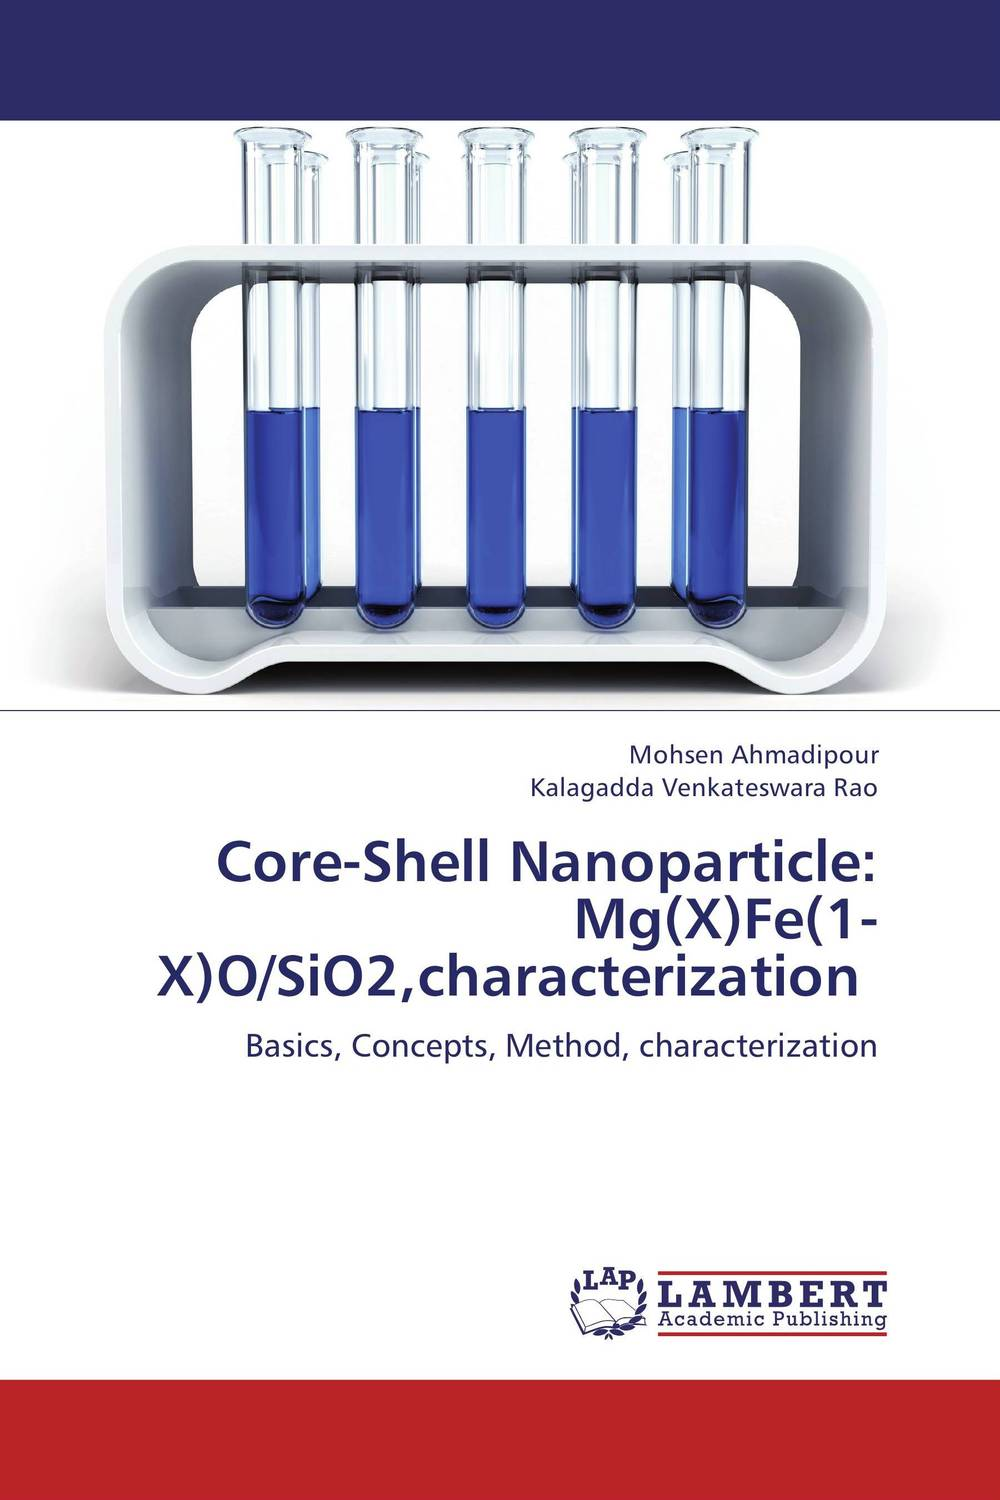 Core-Shell Nanoparticle: Mg(X)Fe(1-X)O/SiO2,characterization environmentally friendly pvc inflatable shell water floating row of a variety of swimming pearl shell swimming ring